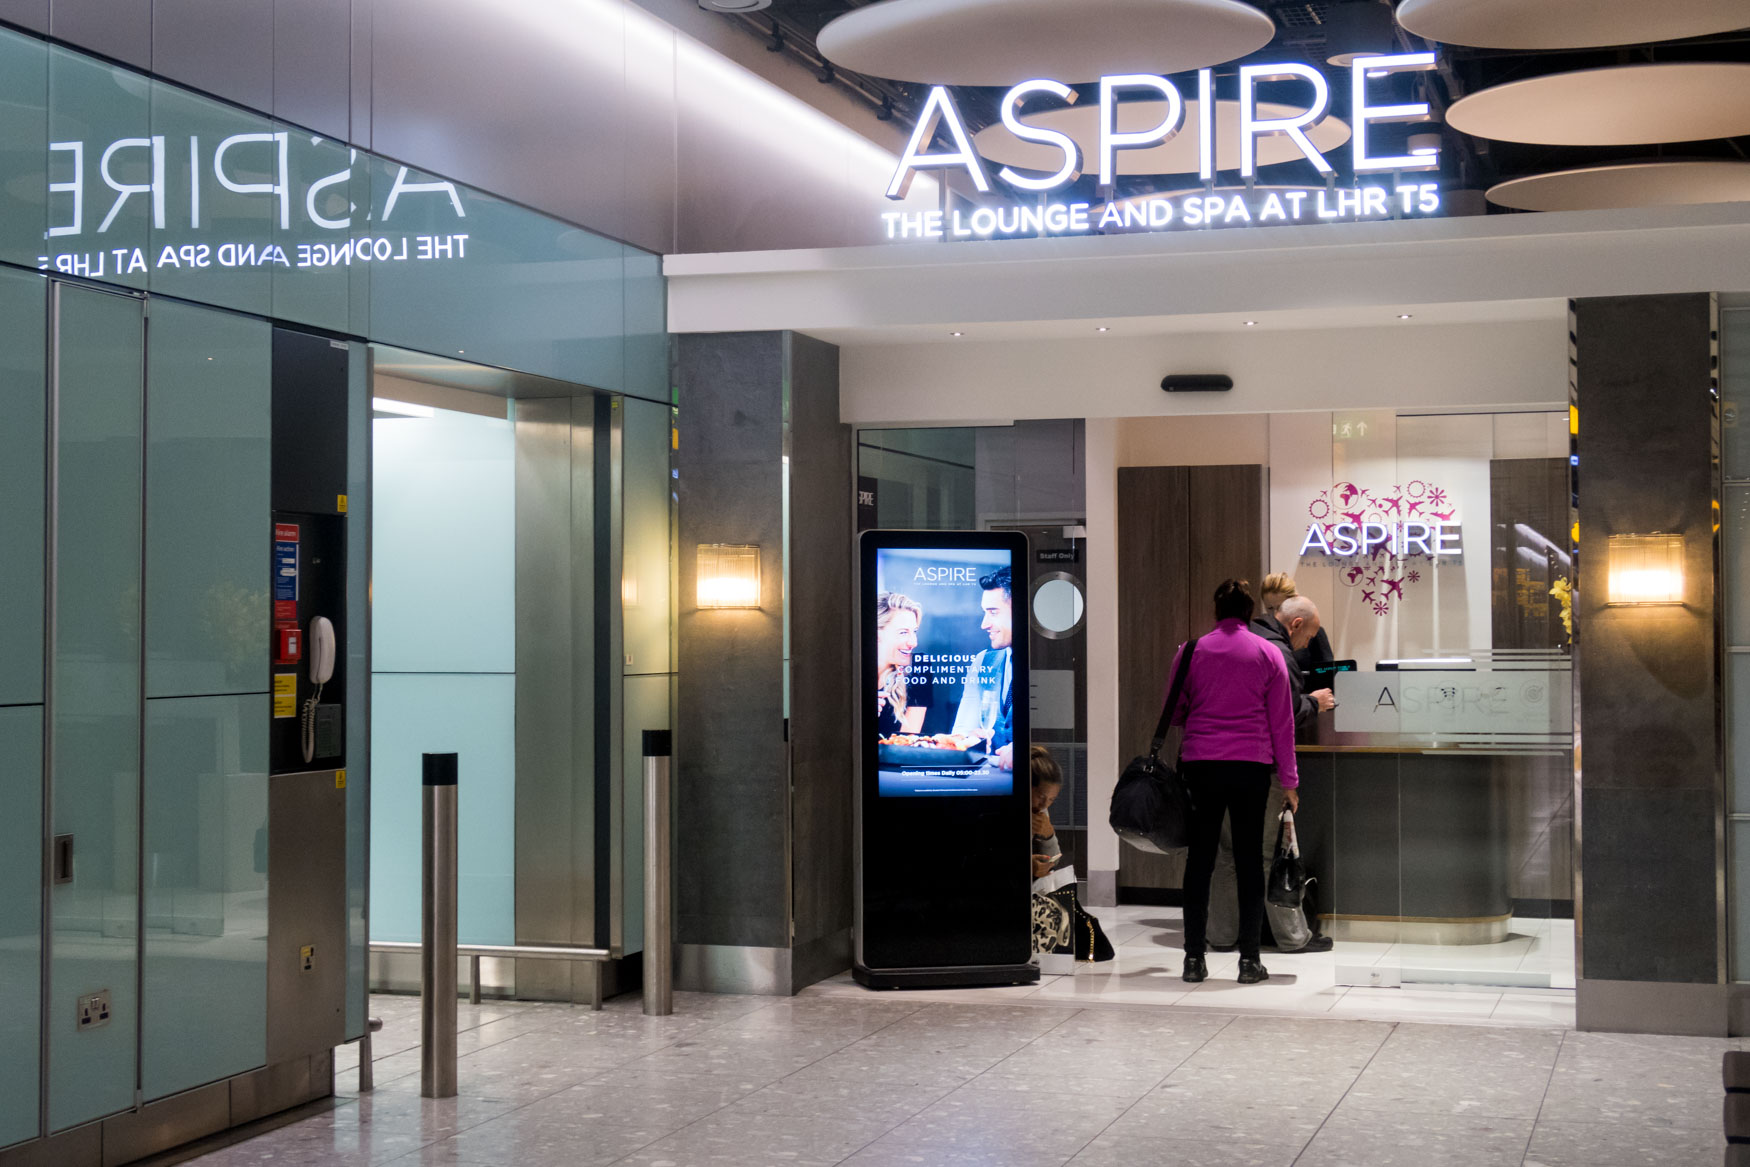 Aspire The Lounge and Spa at LHR T5